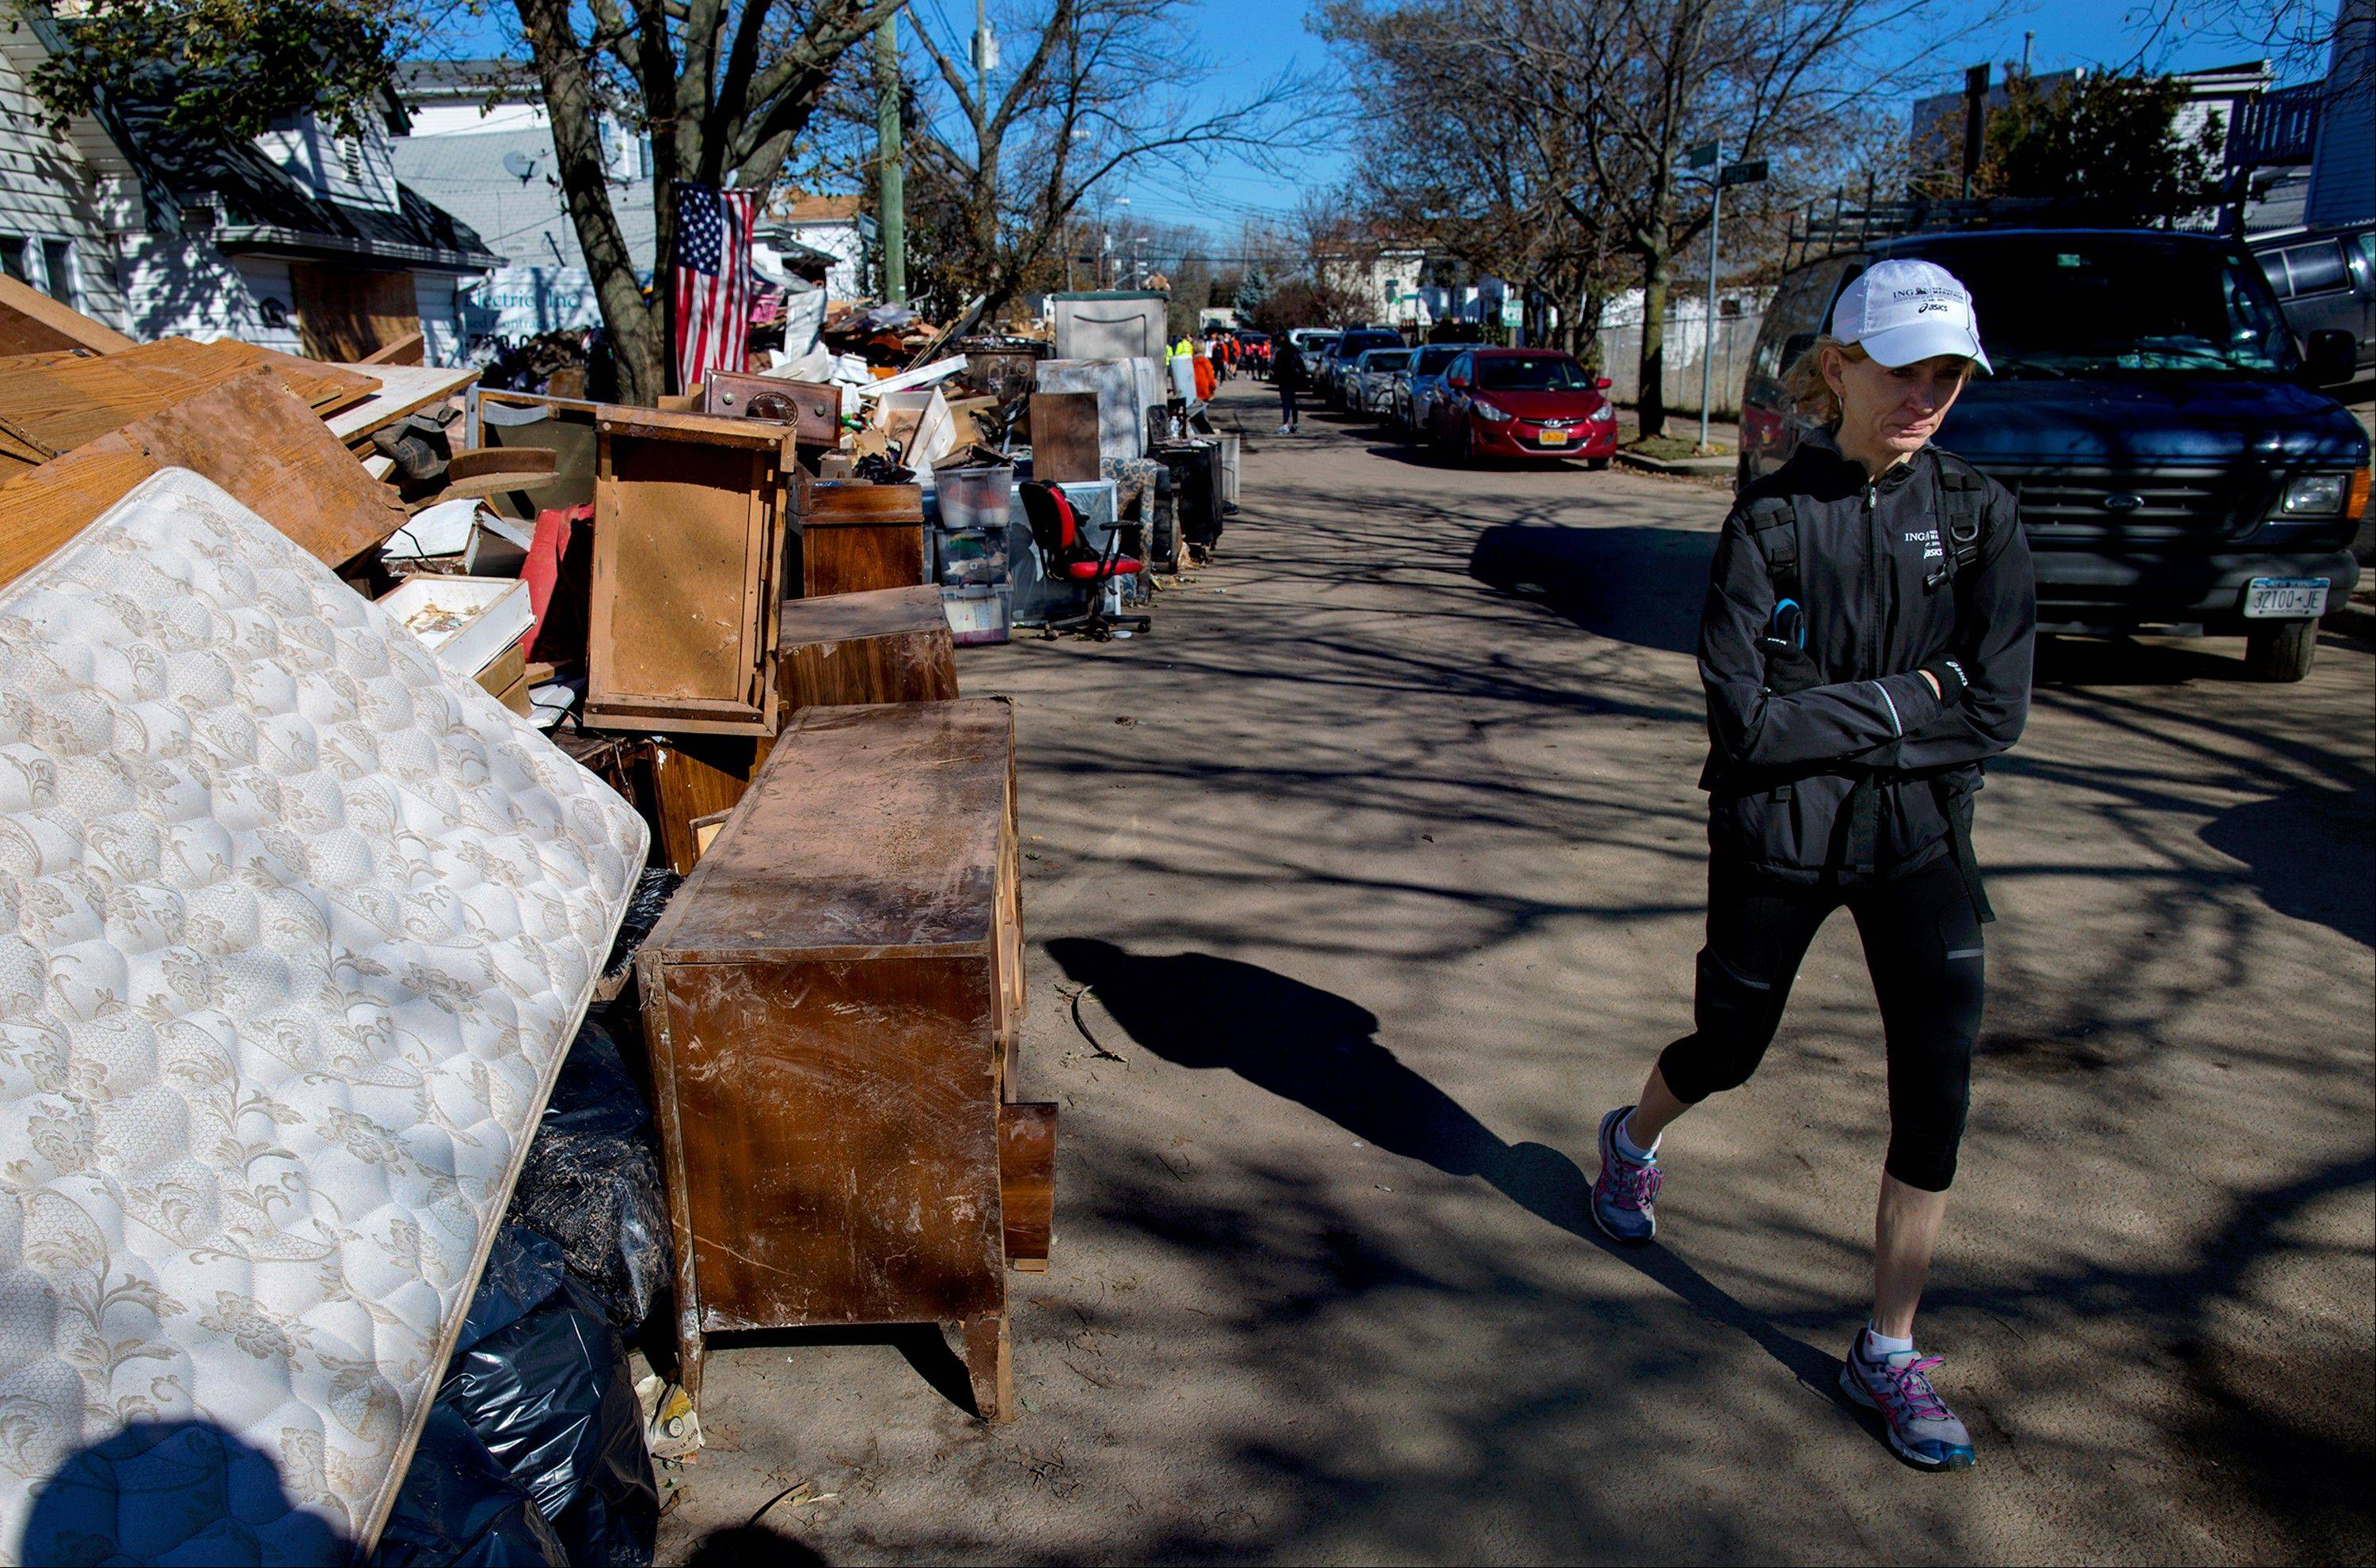 Mary Wittenberg, president of the New York Road Runners, reacts after speaking with a family whose house was heavily damaged during Superstorm Sandy in the Staten Island borough New York ON Sunday.